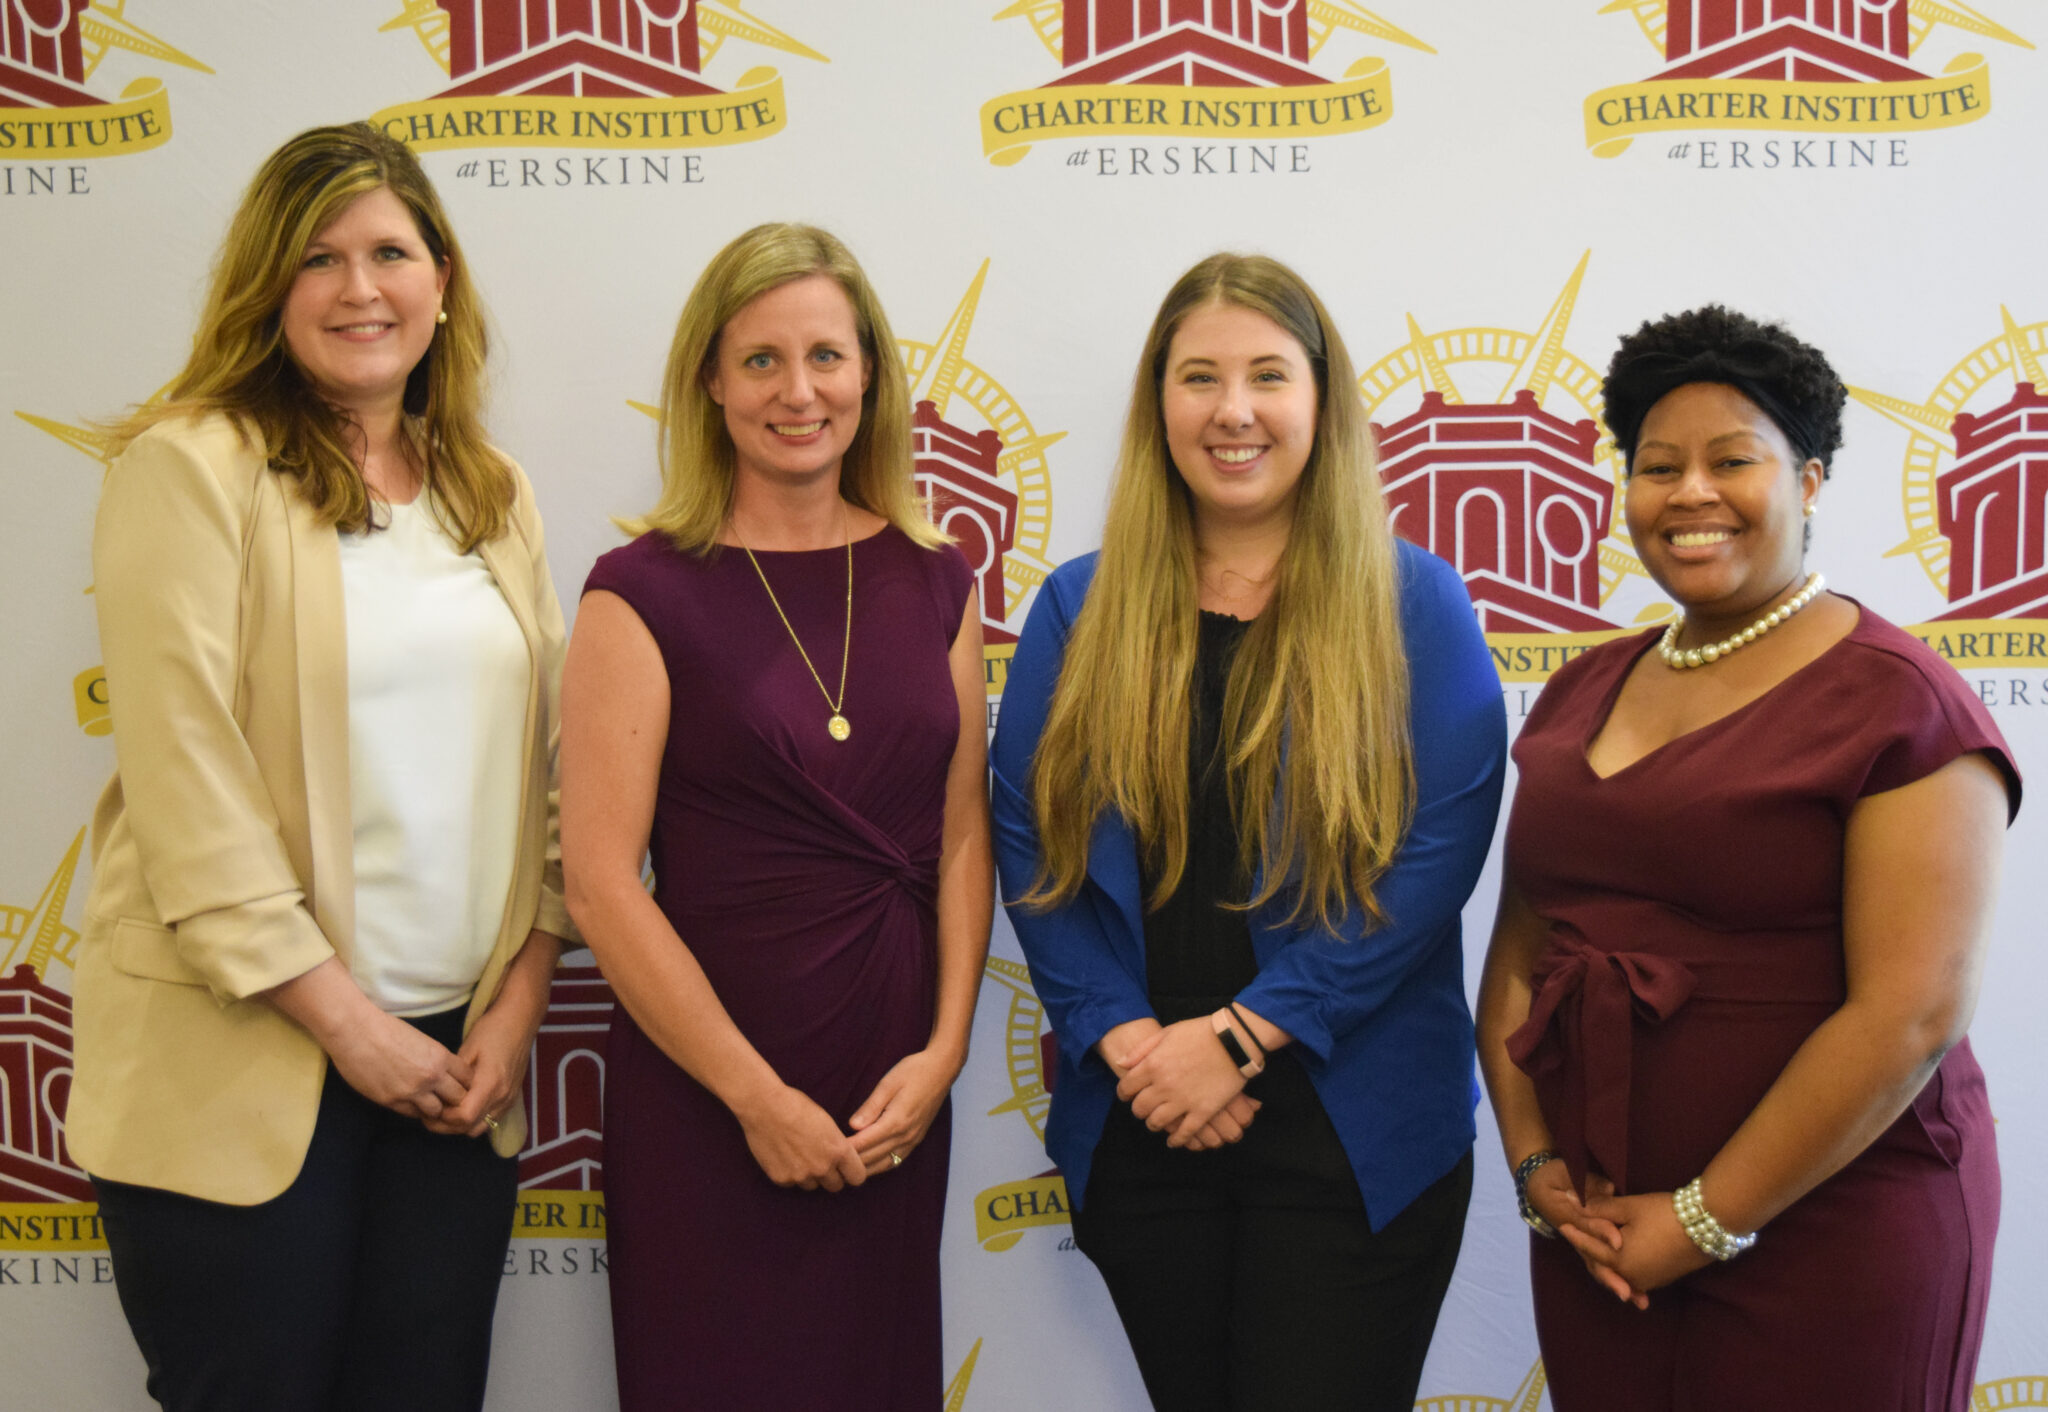 Four women in business attire in front of the Erskine Charter backdrop.